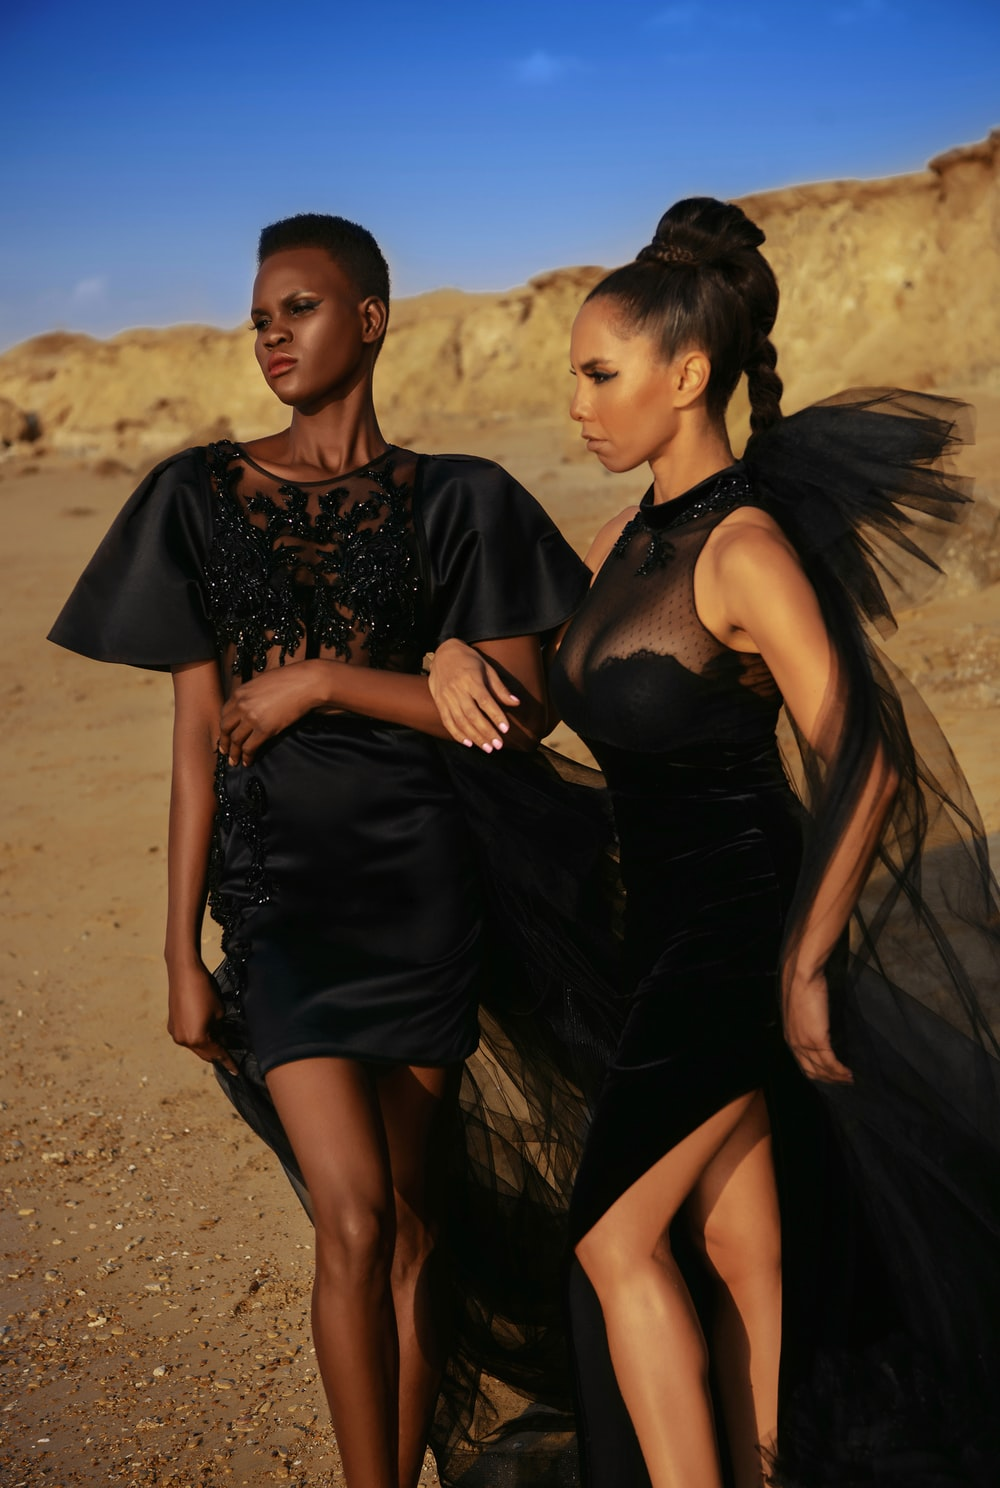 2 women in black dress standing on brown sand during daytime